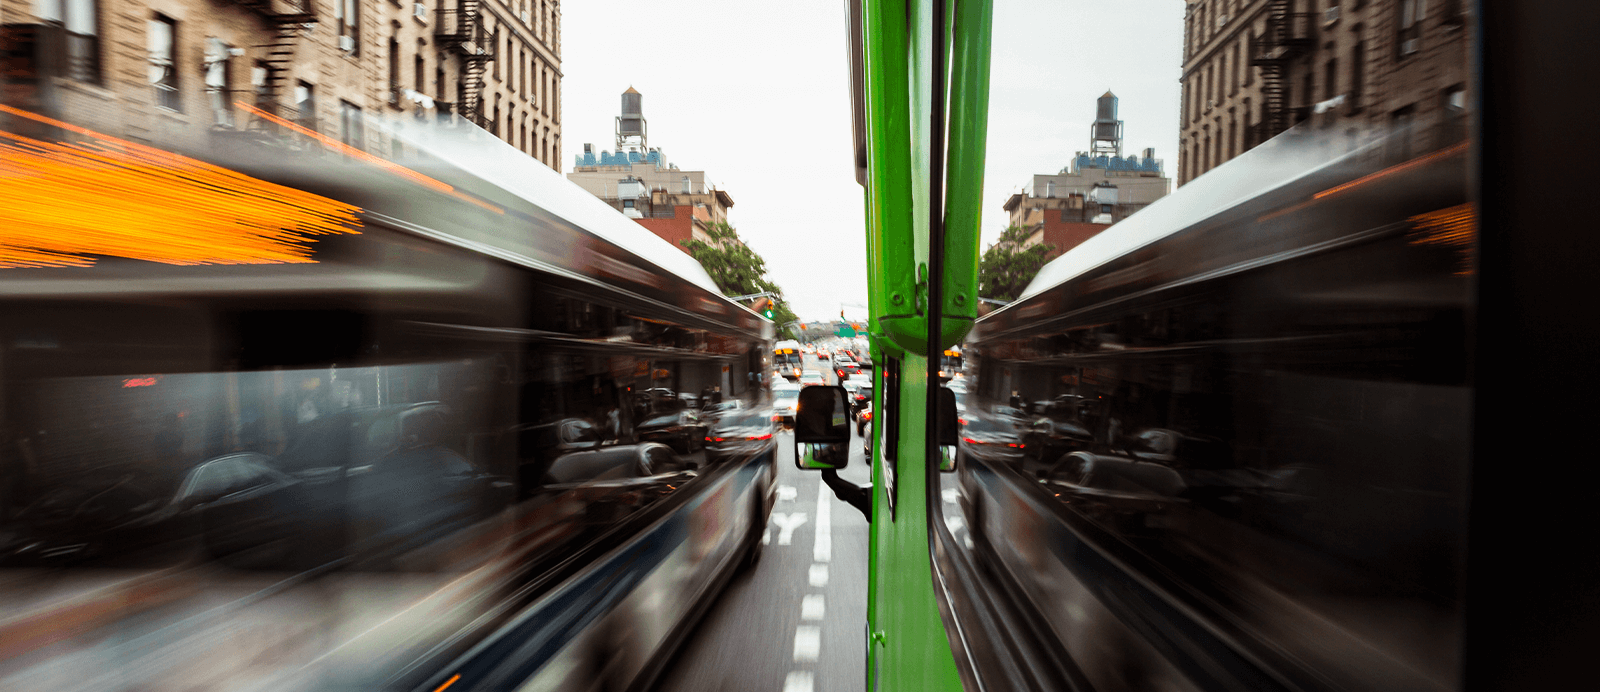 Cars rush by the Roadtrip Nation green RV as it drives down a busy city street.